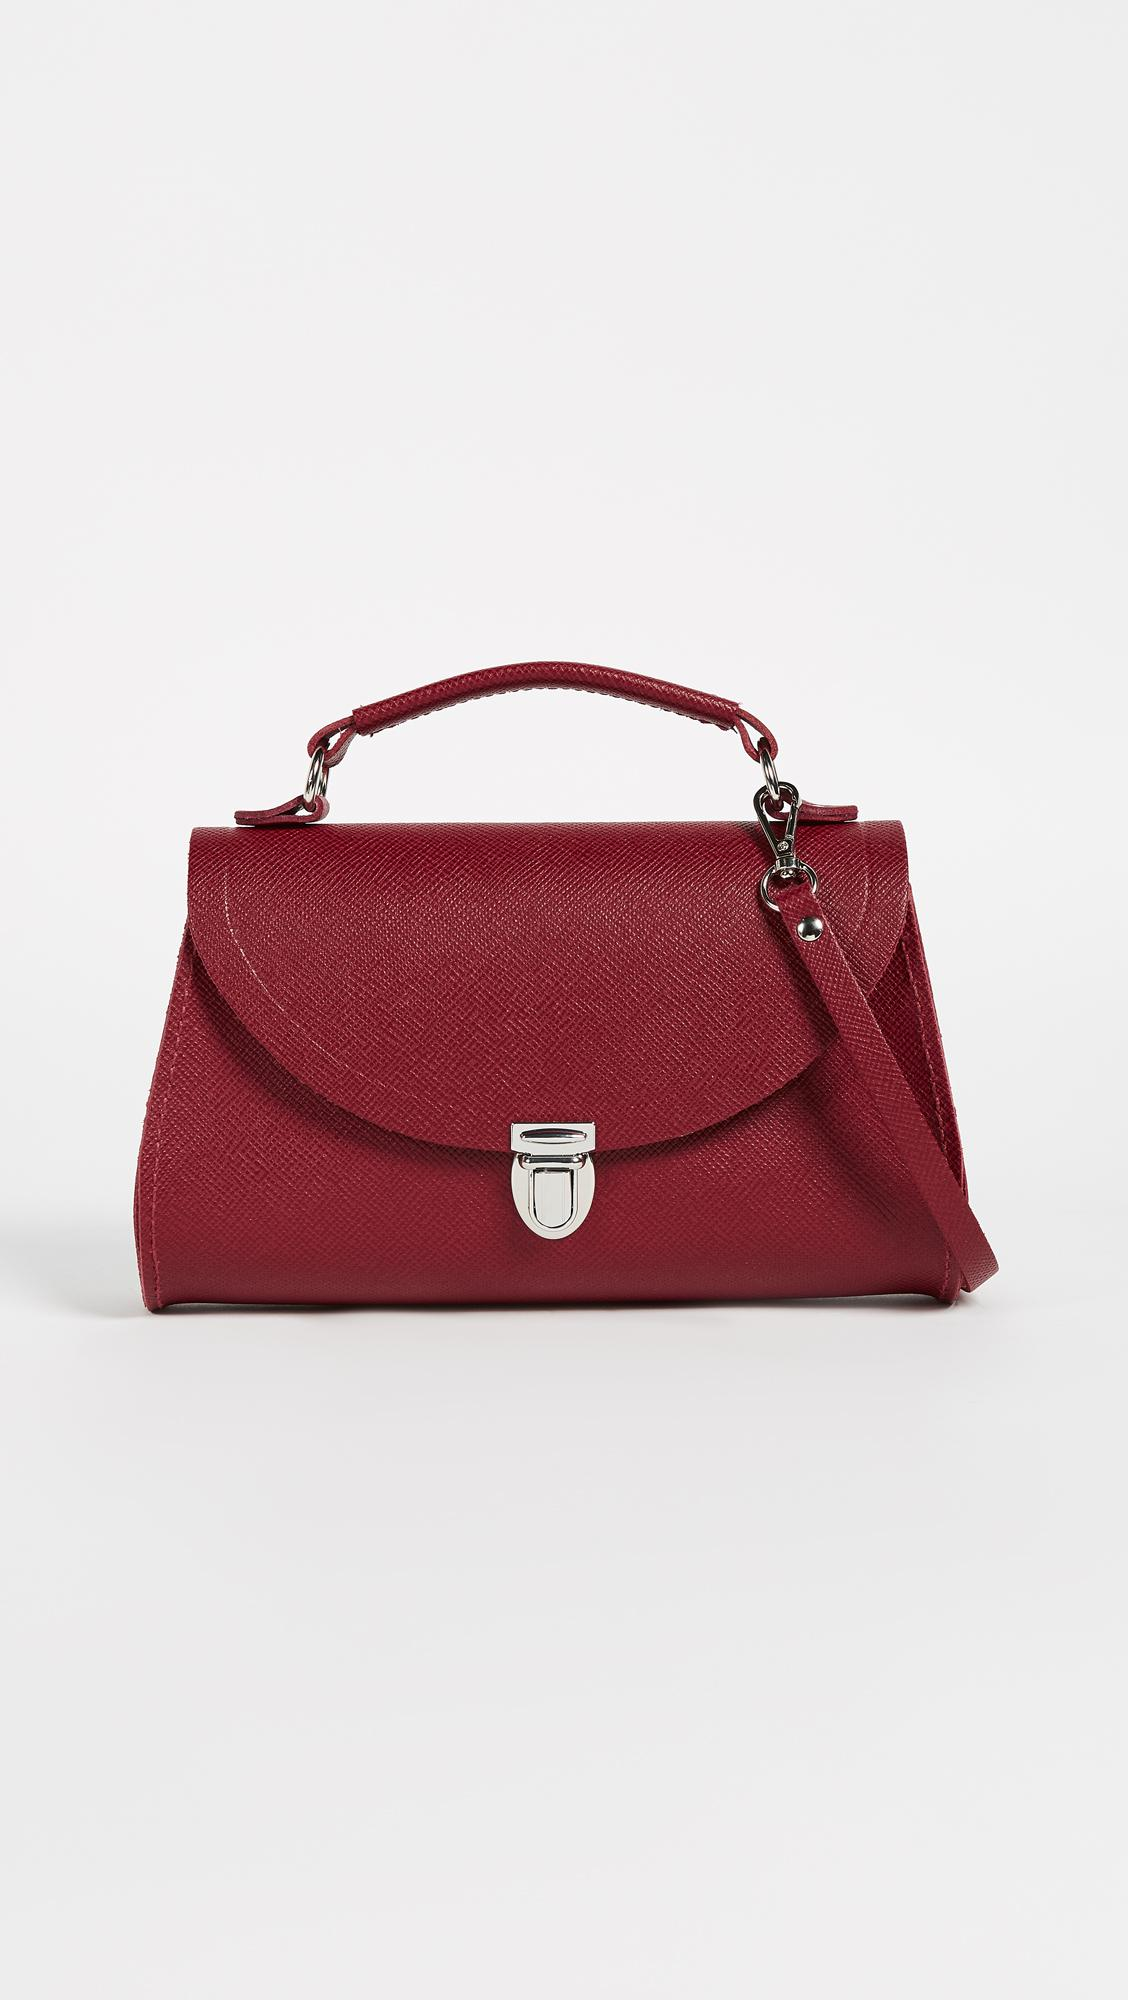 The Cambridge Satchel CompanyDionysus mini top handle bag